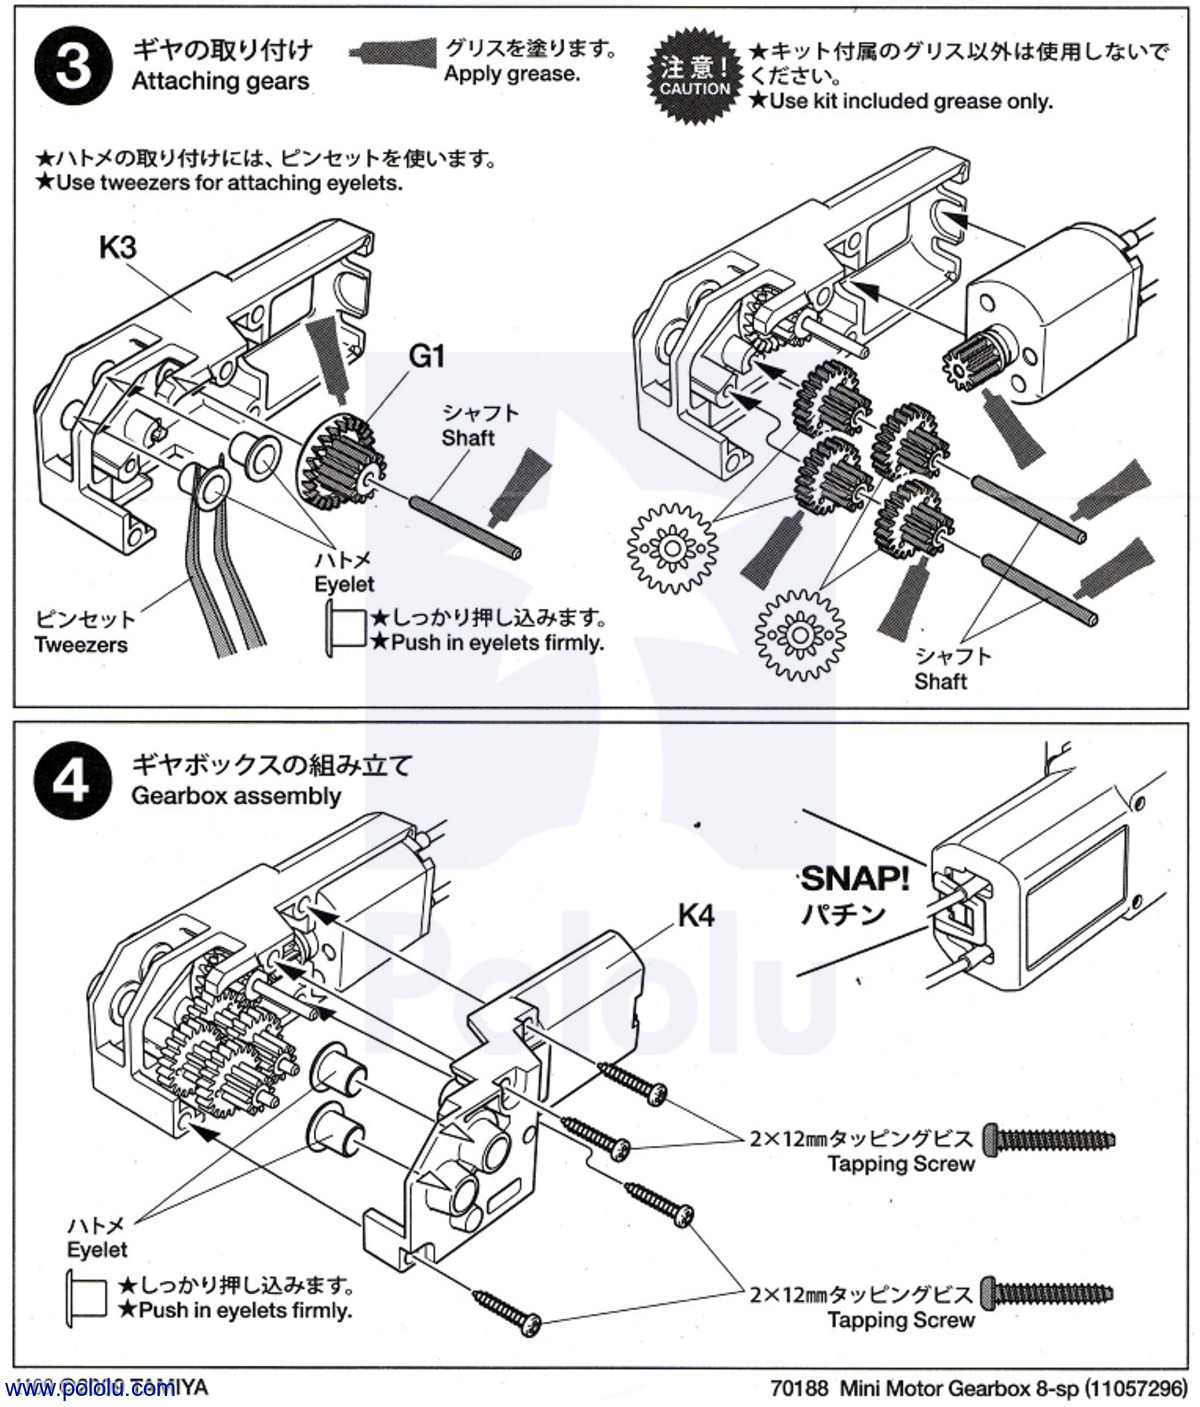 Pololu Tamiya 70188 Mini Motor Gearbox 8 Speed Kit Three Wiring Diagram Instructions For Page 2